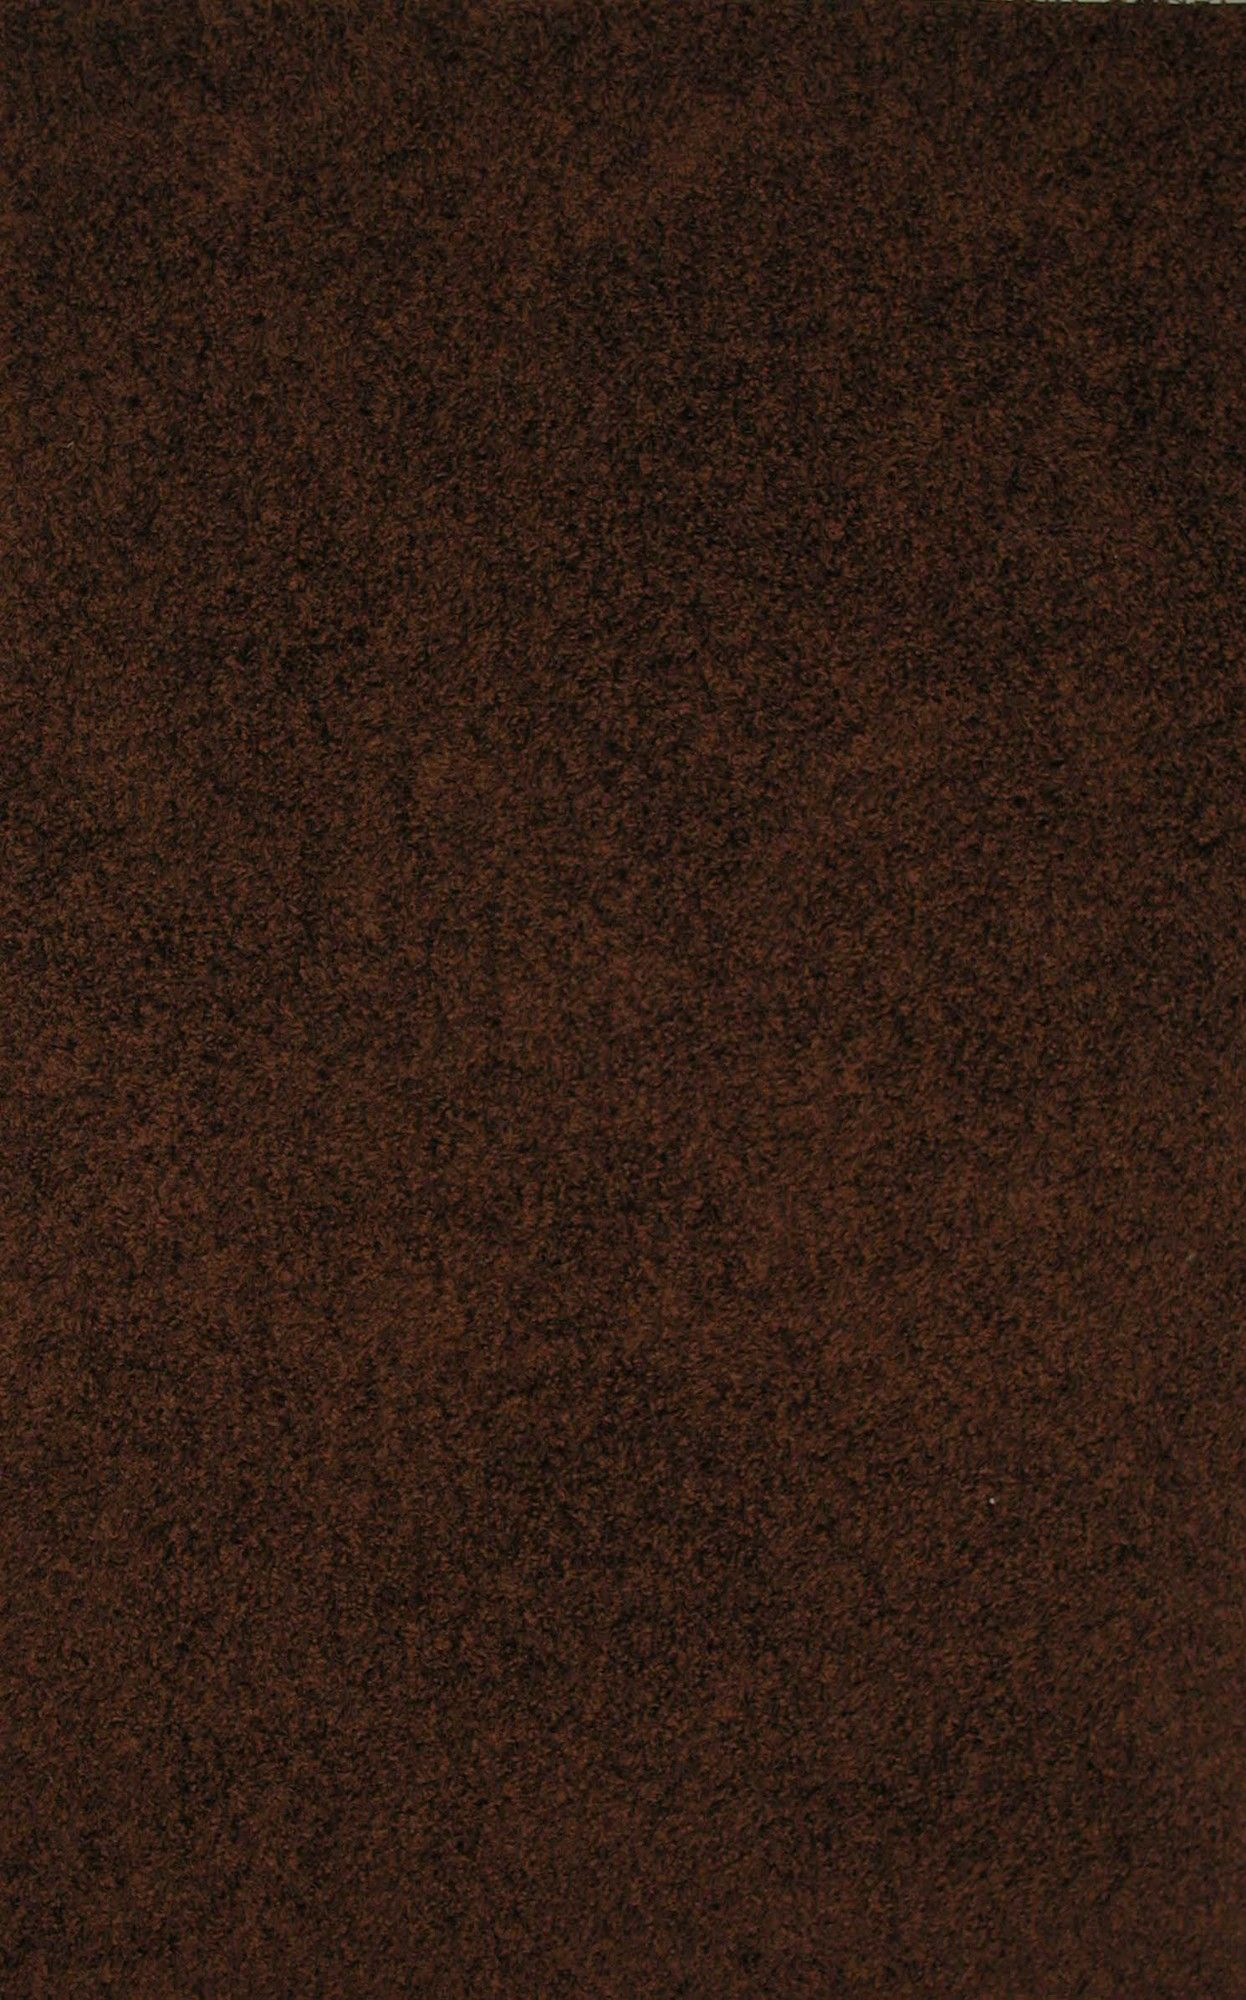 Dalyn Rug Co Casual Elegance Fudge Area Reviews Wayfair Closet 118